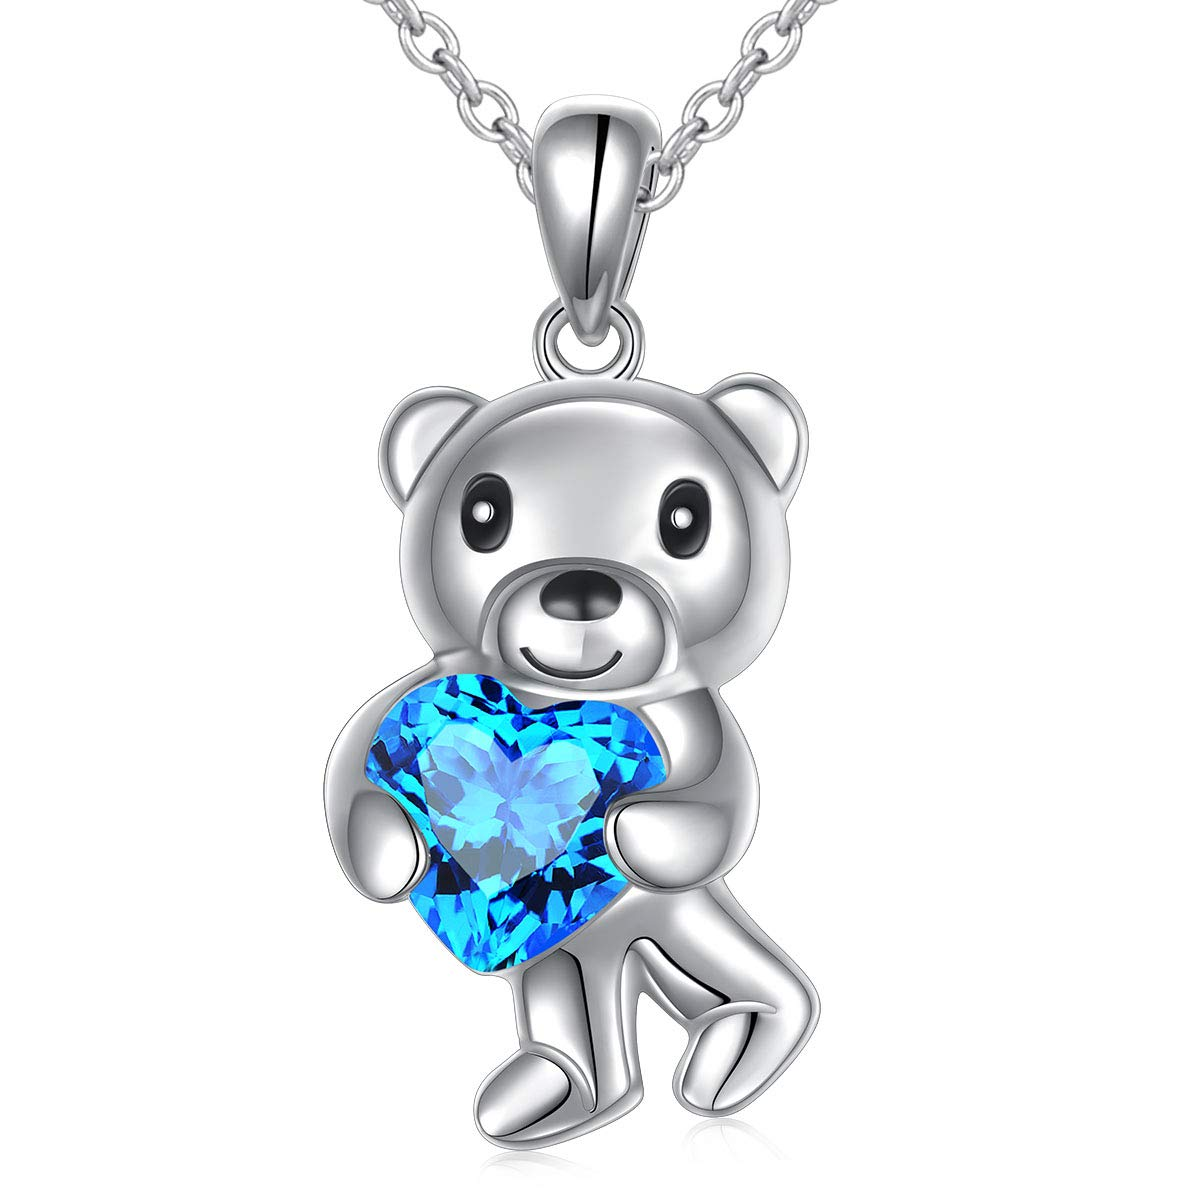 Amazon Girlfriend Birthday Gifts 925 Sterling Silver Cute Animal Jewelry Blue Cubic Zirconia Love Heart Bear Pendant Necklace For Women Girls